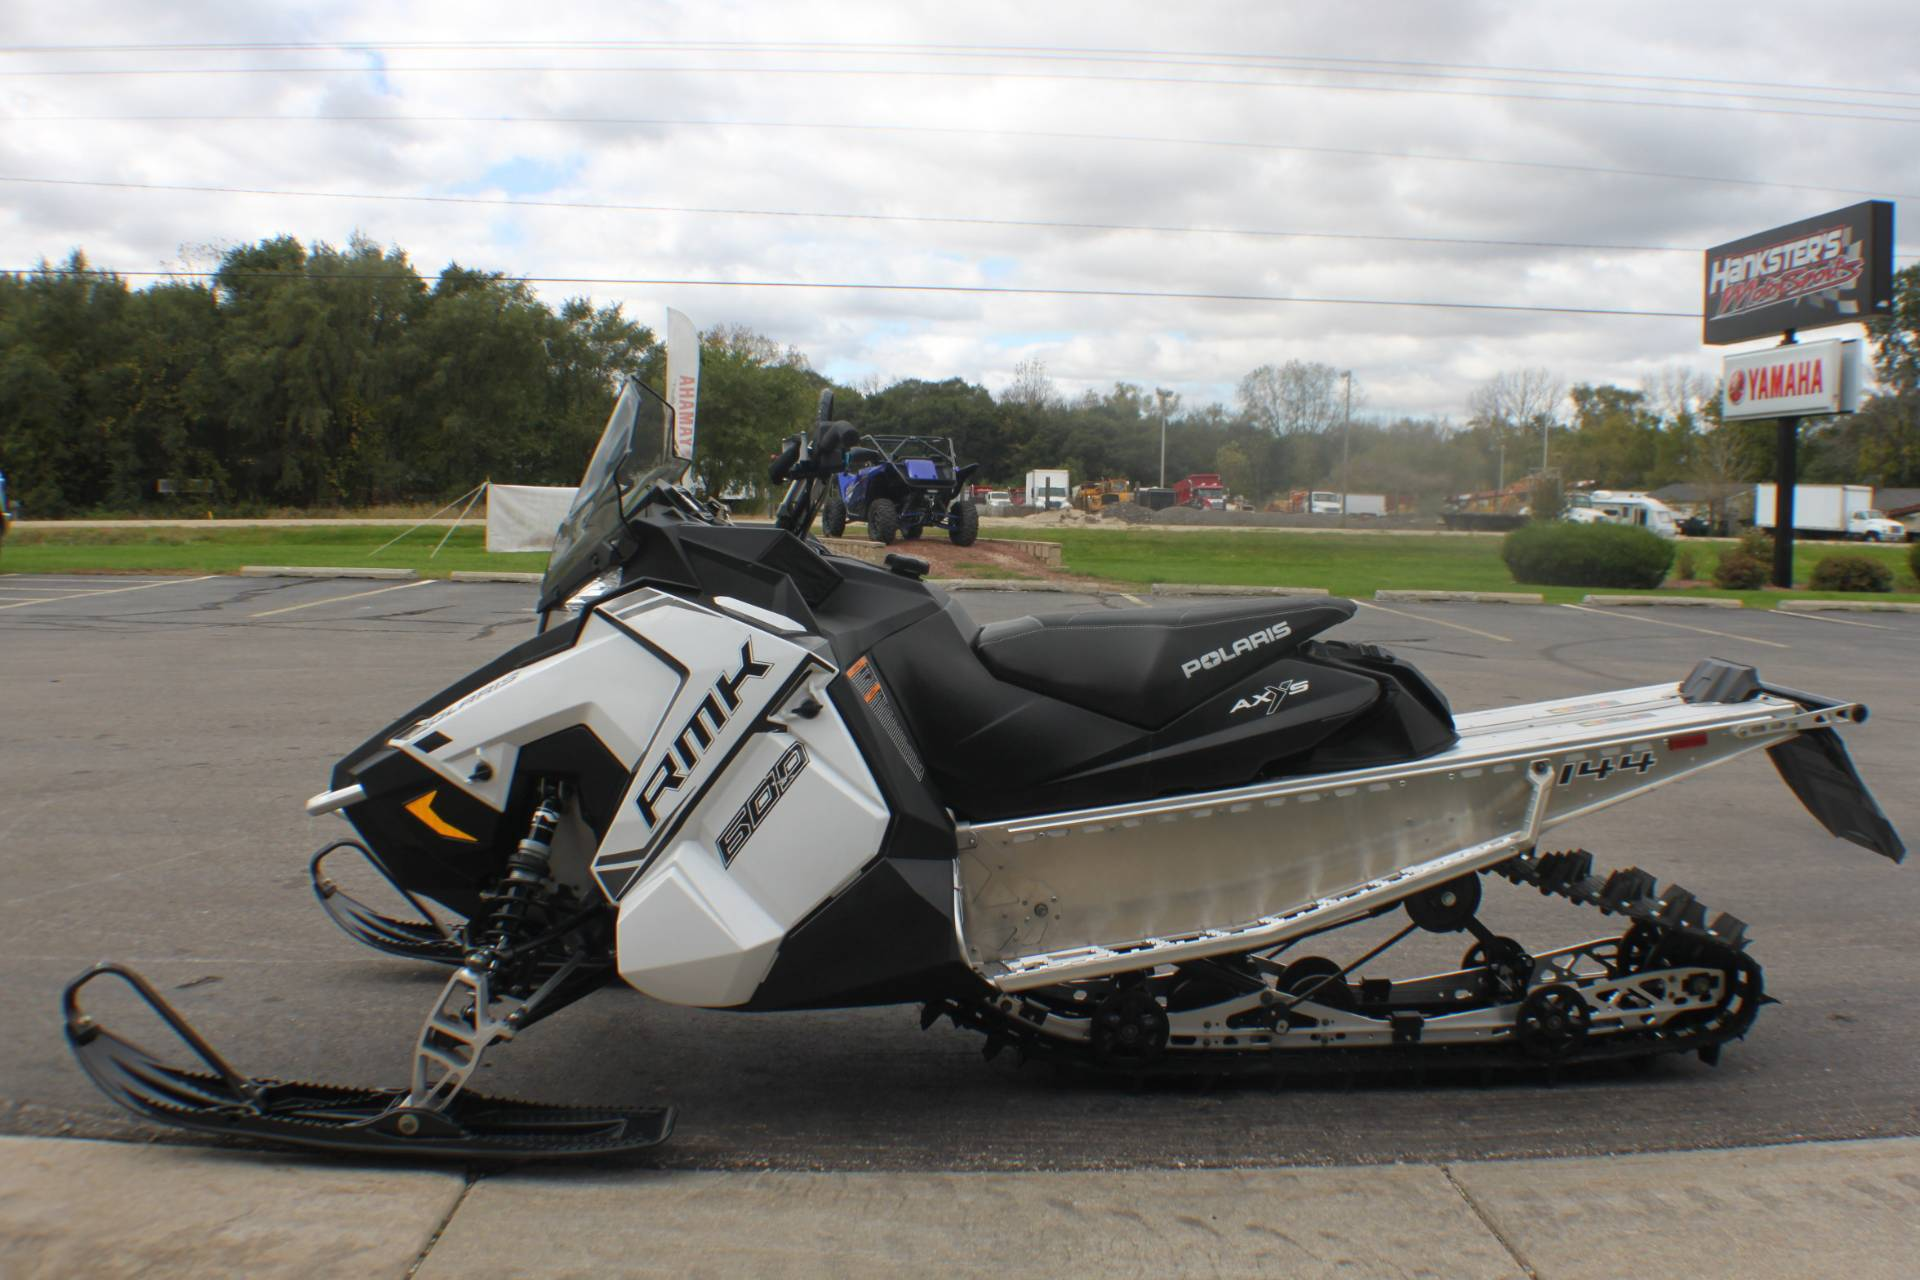 2019 Polaris 600 RMK 144 ES in Janesville, Wisconsin - Photo 5